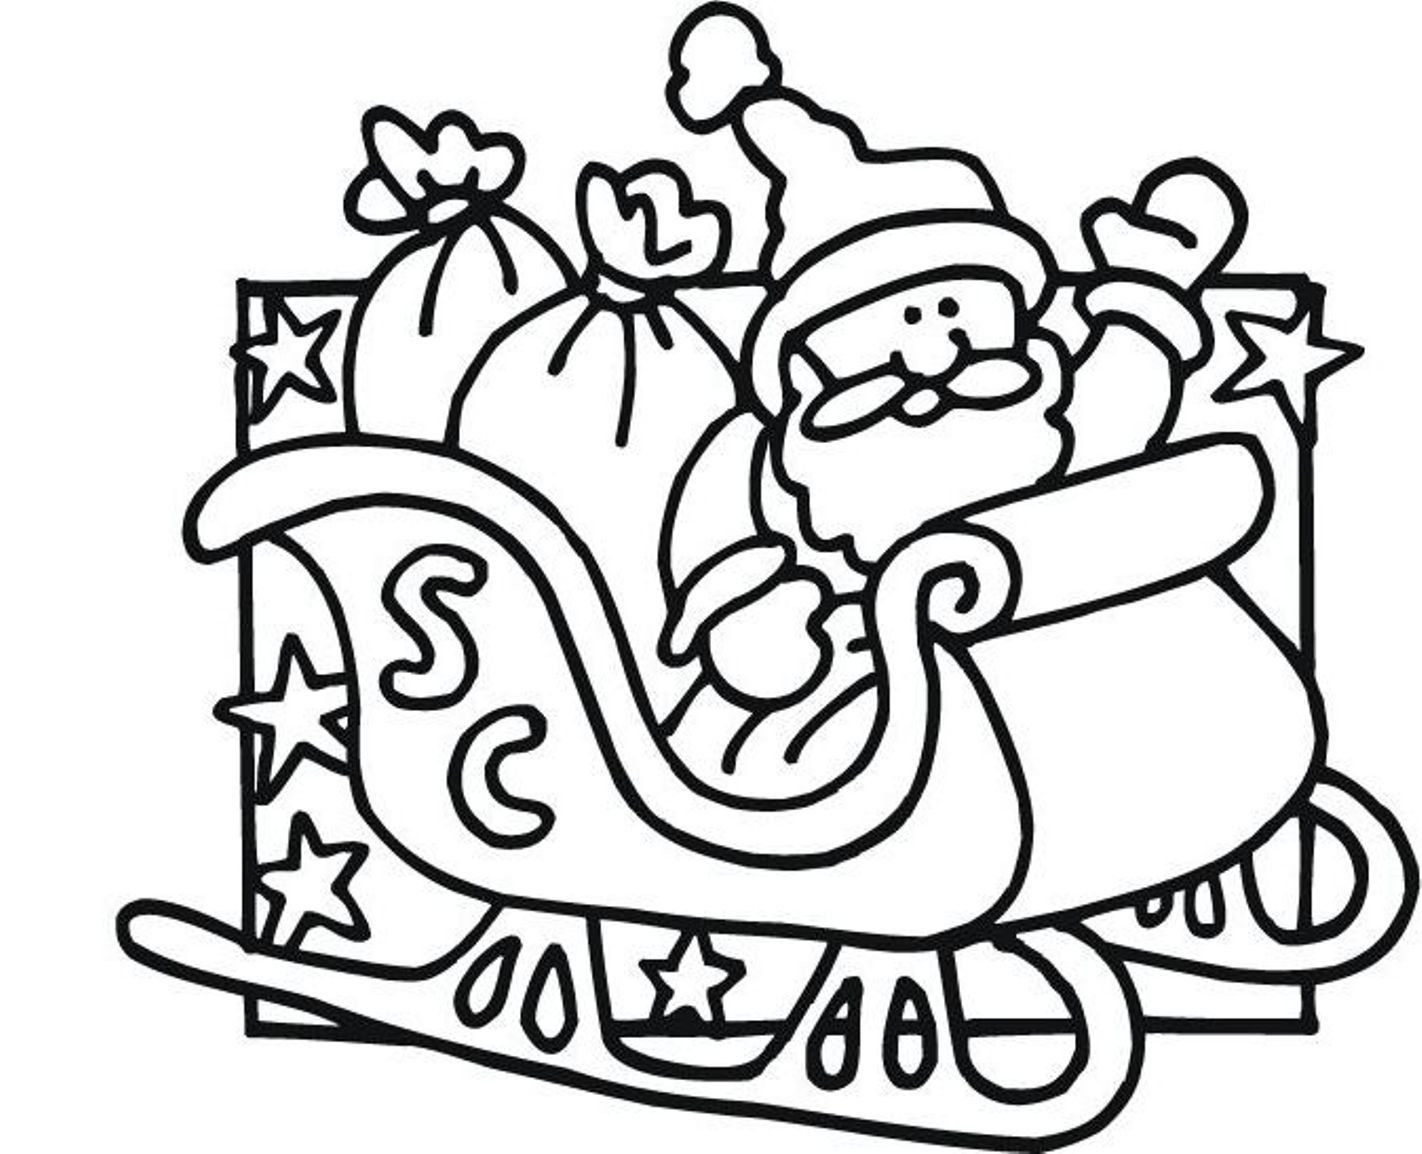 Santa S Slay Coloring Pages With Christmas Claus Erieairfair